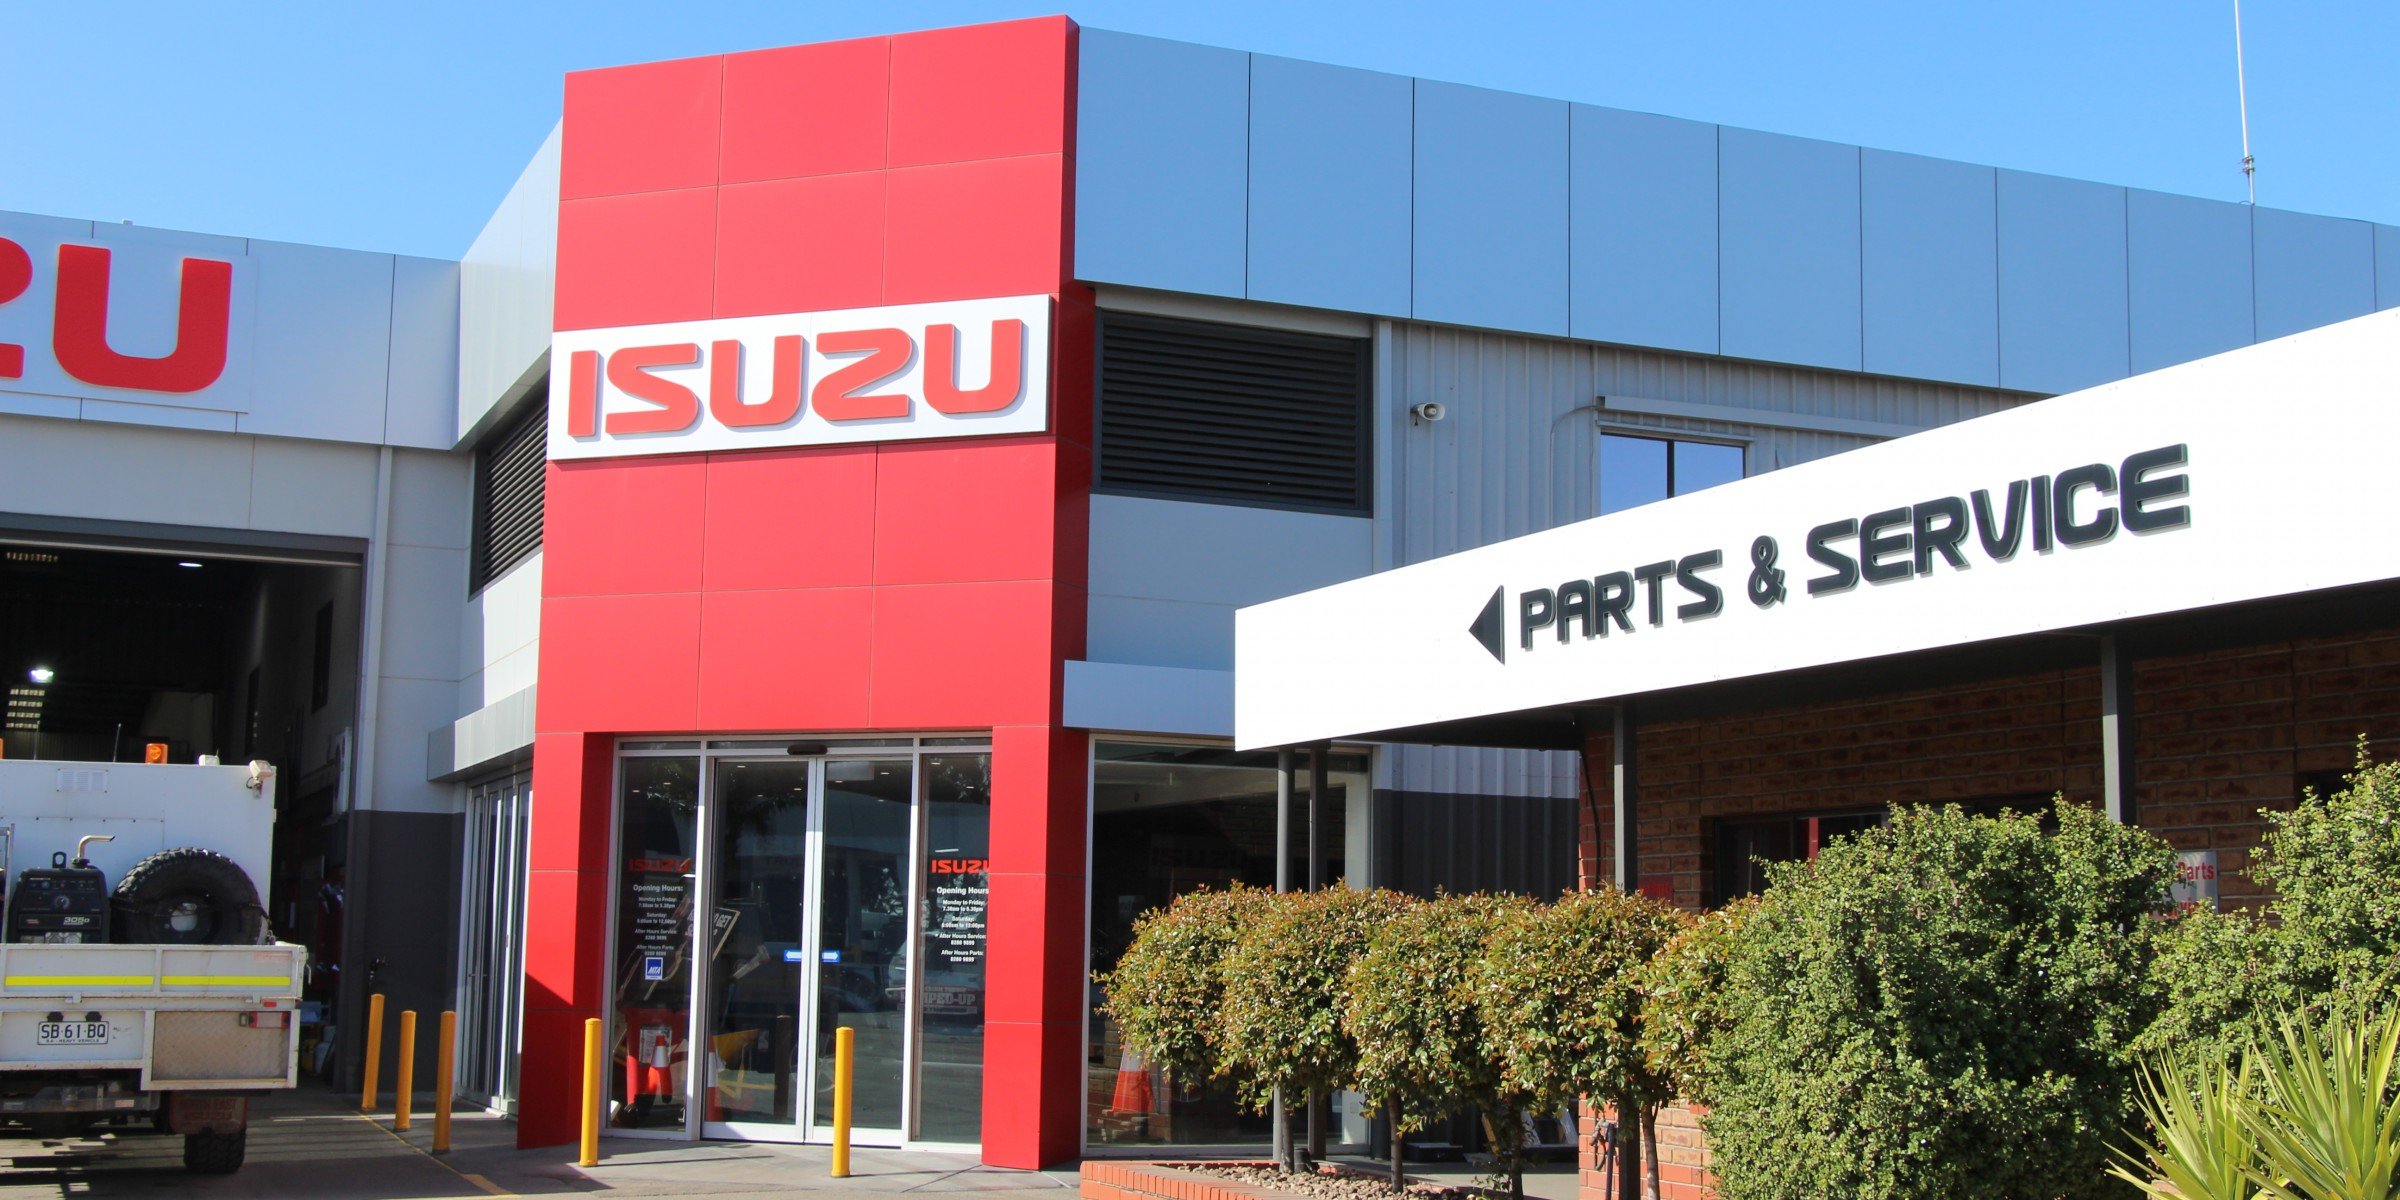 Isuzu Ute Commercial Architecture entry point photo